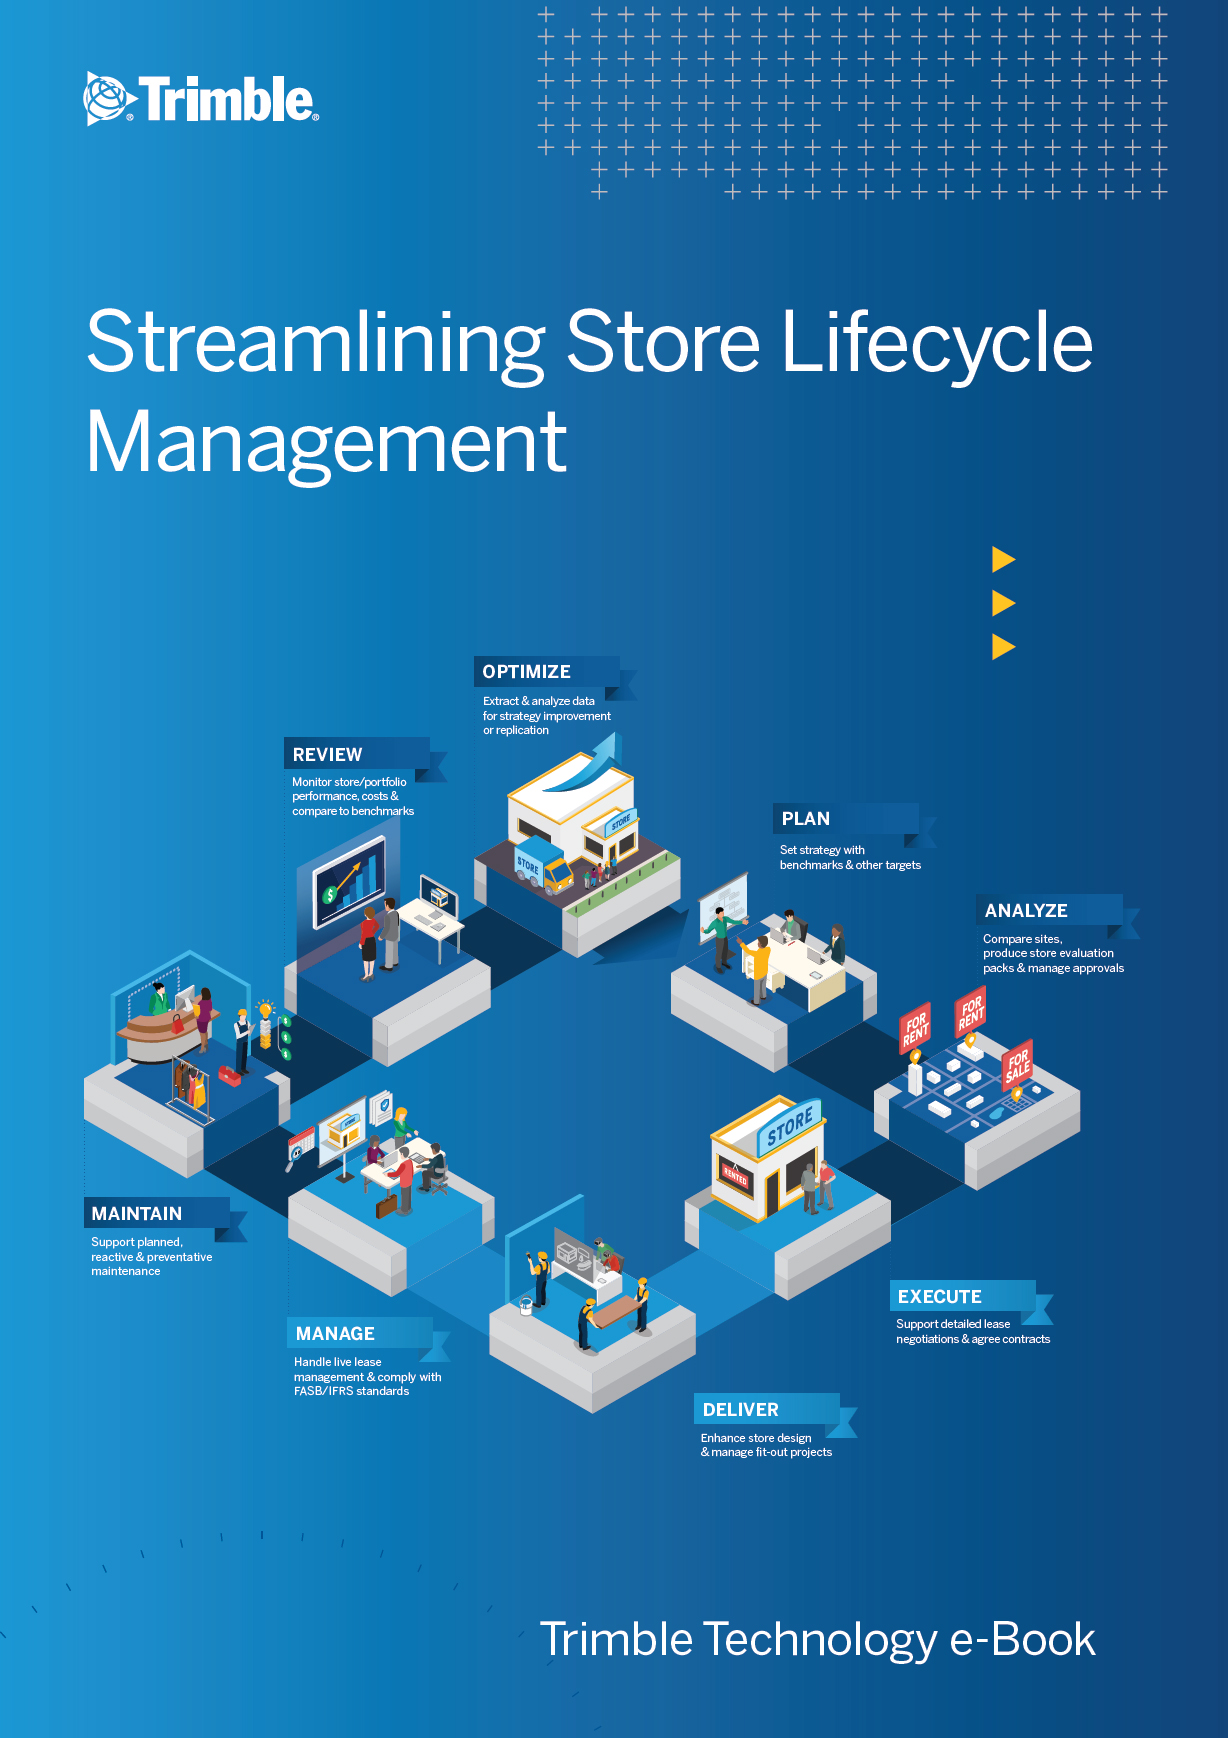 How to Streamline Store Lifecycle Management